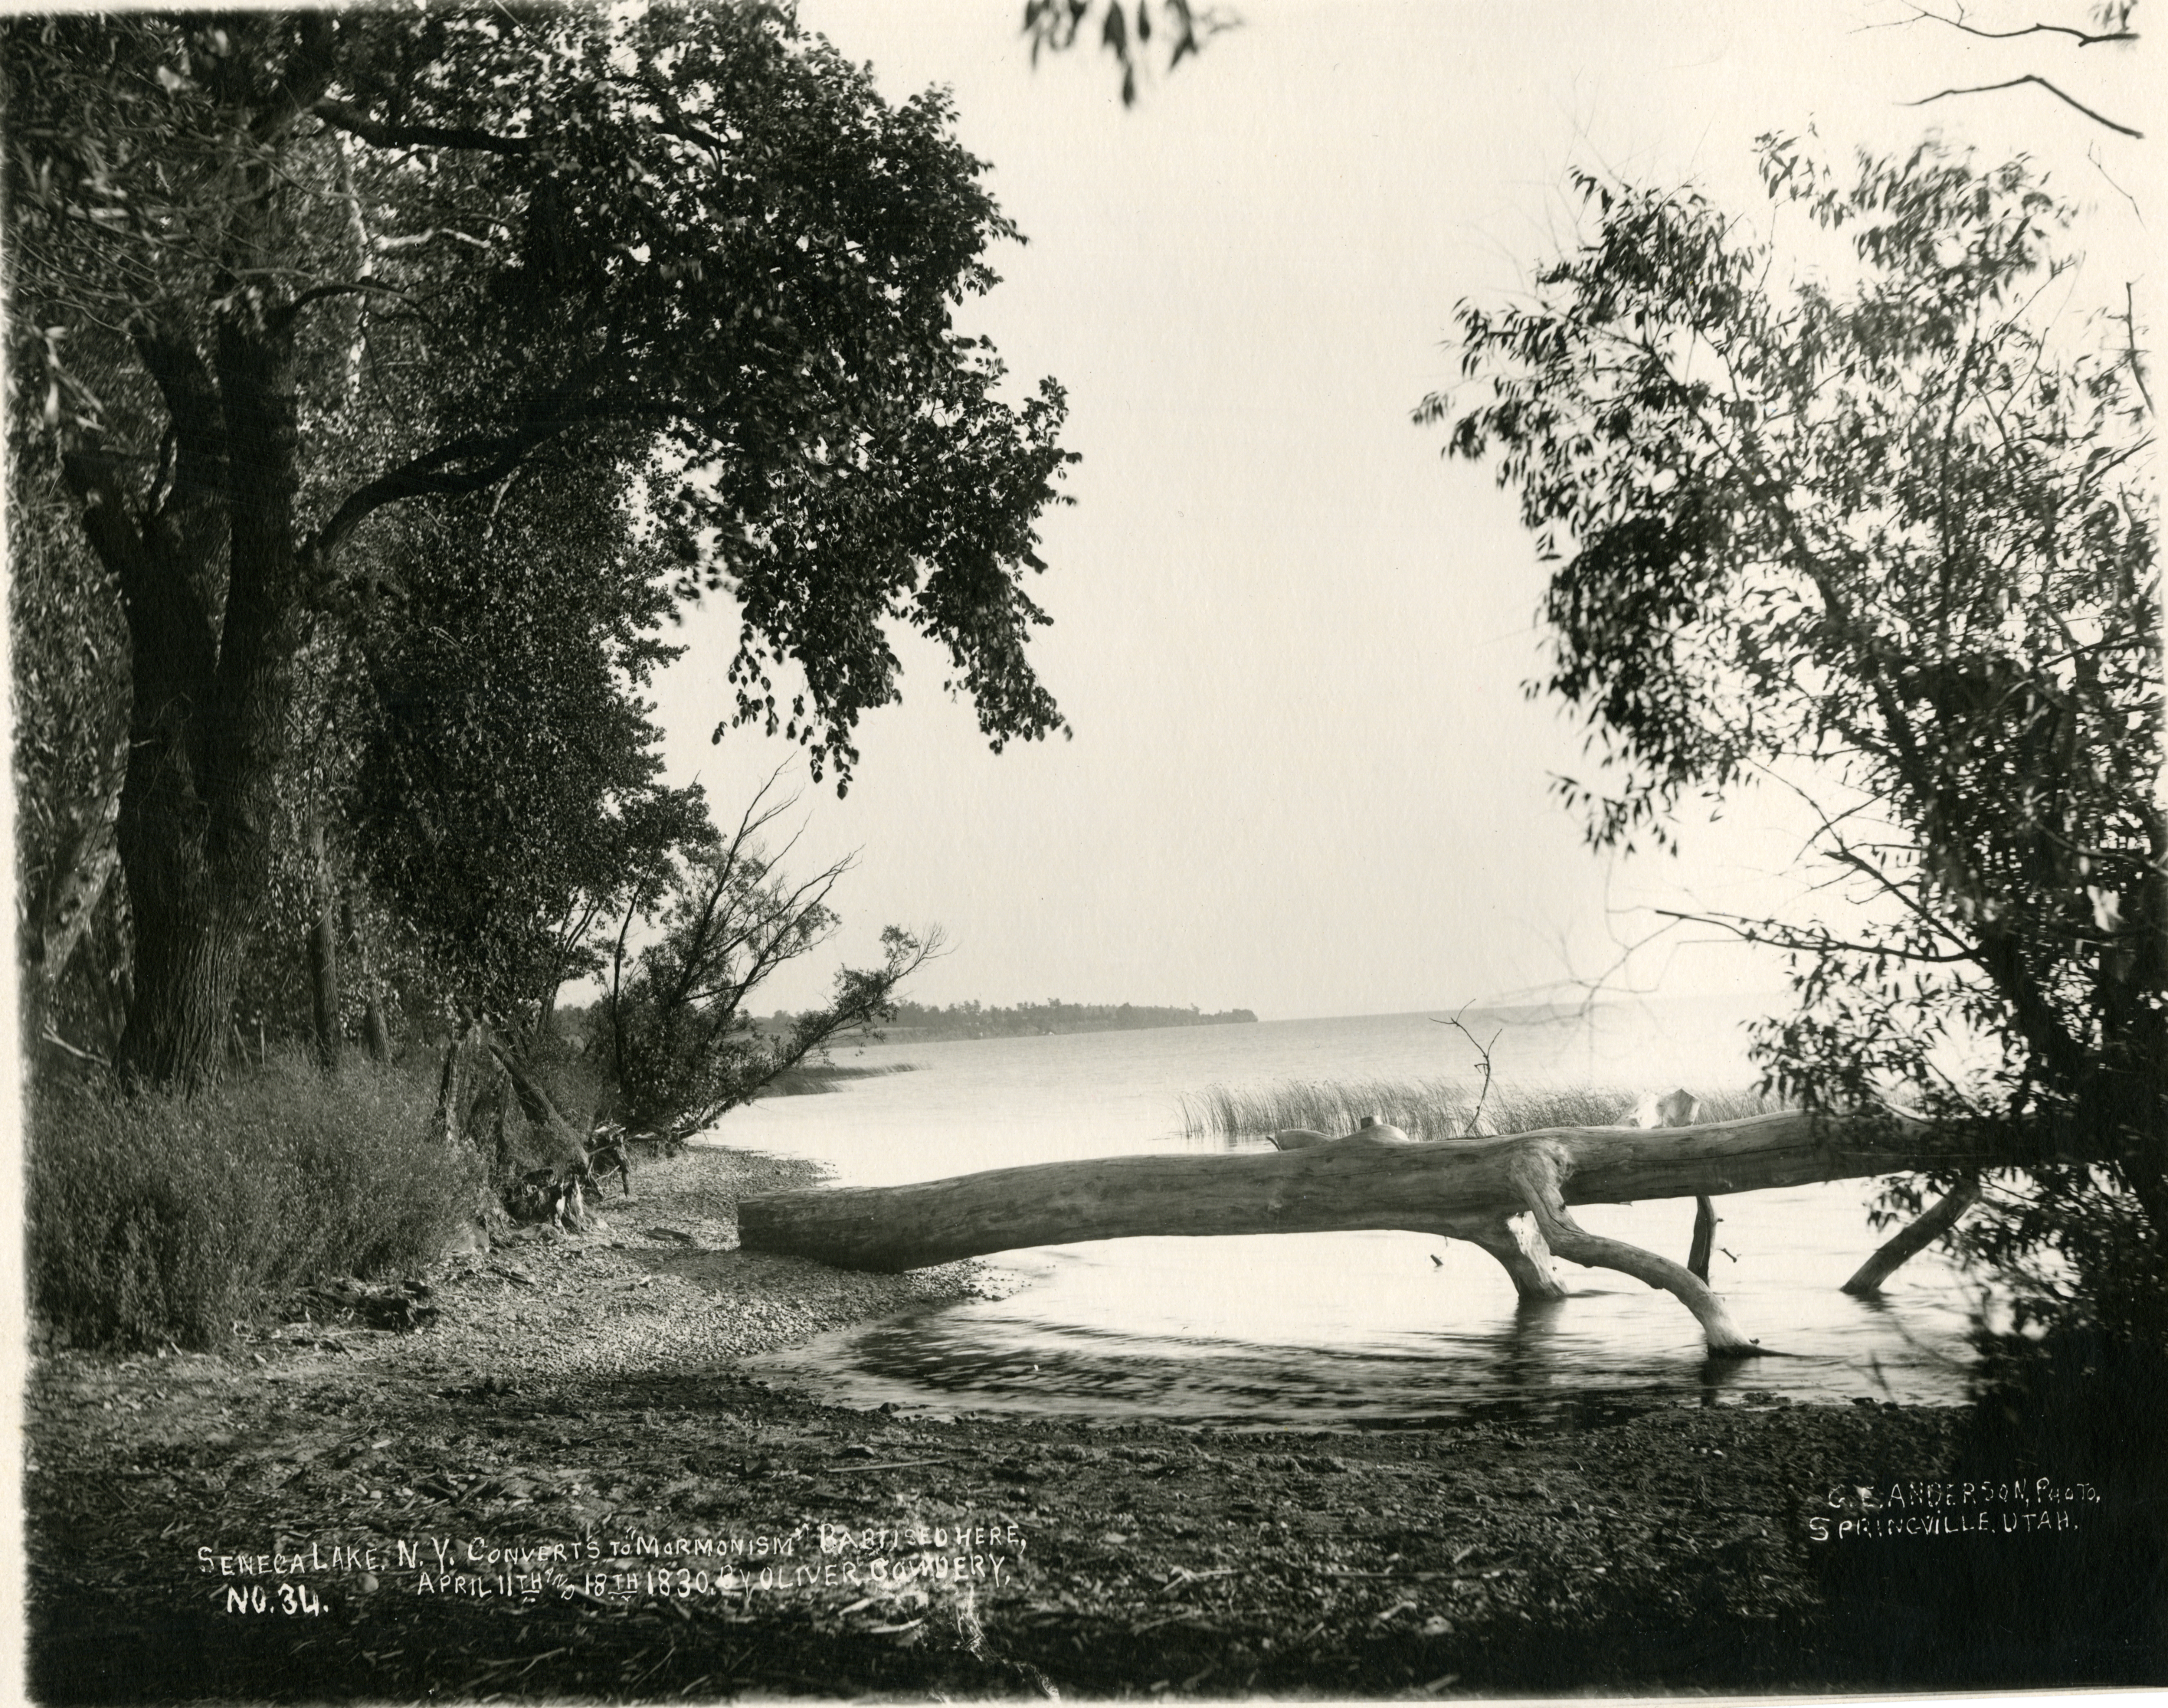 late 19th century photo of Seneca Lake. This side of lake is where the baptisms are believed to have taken place.